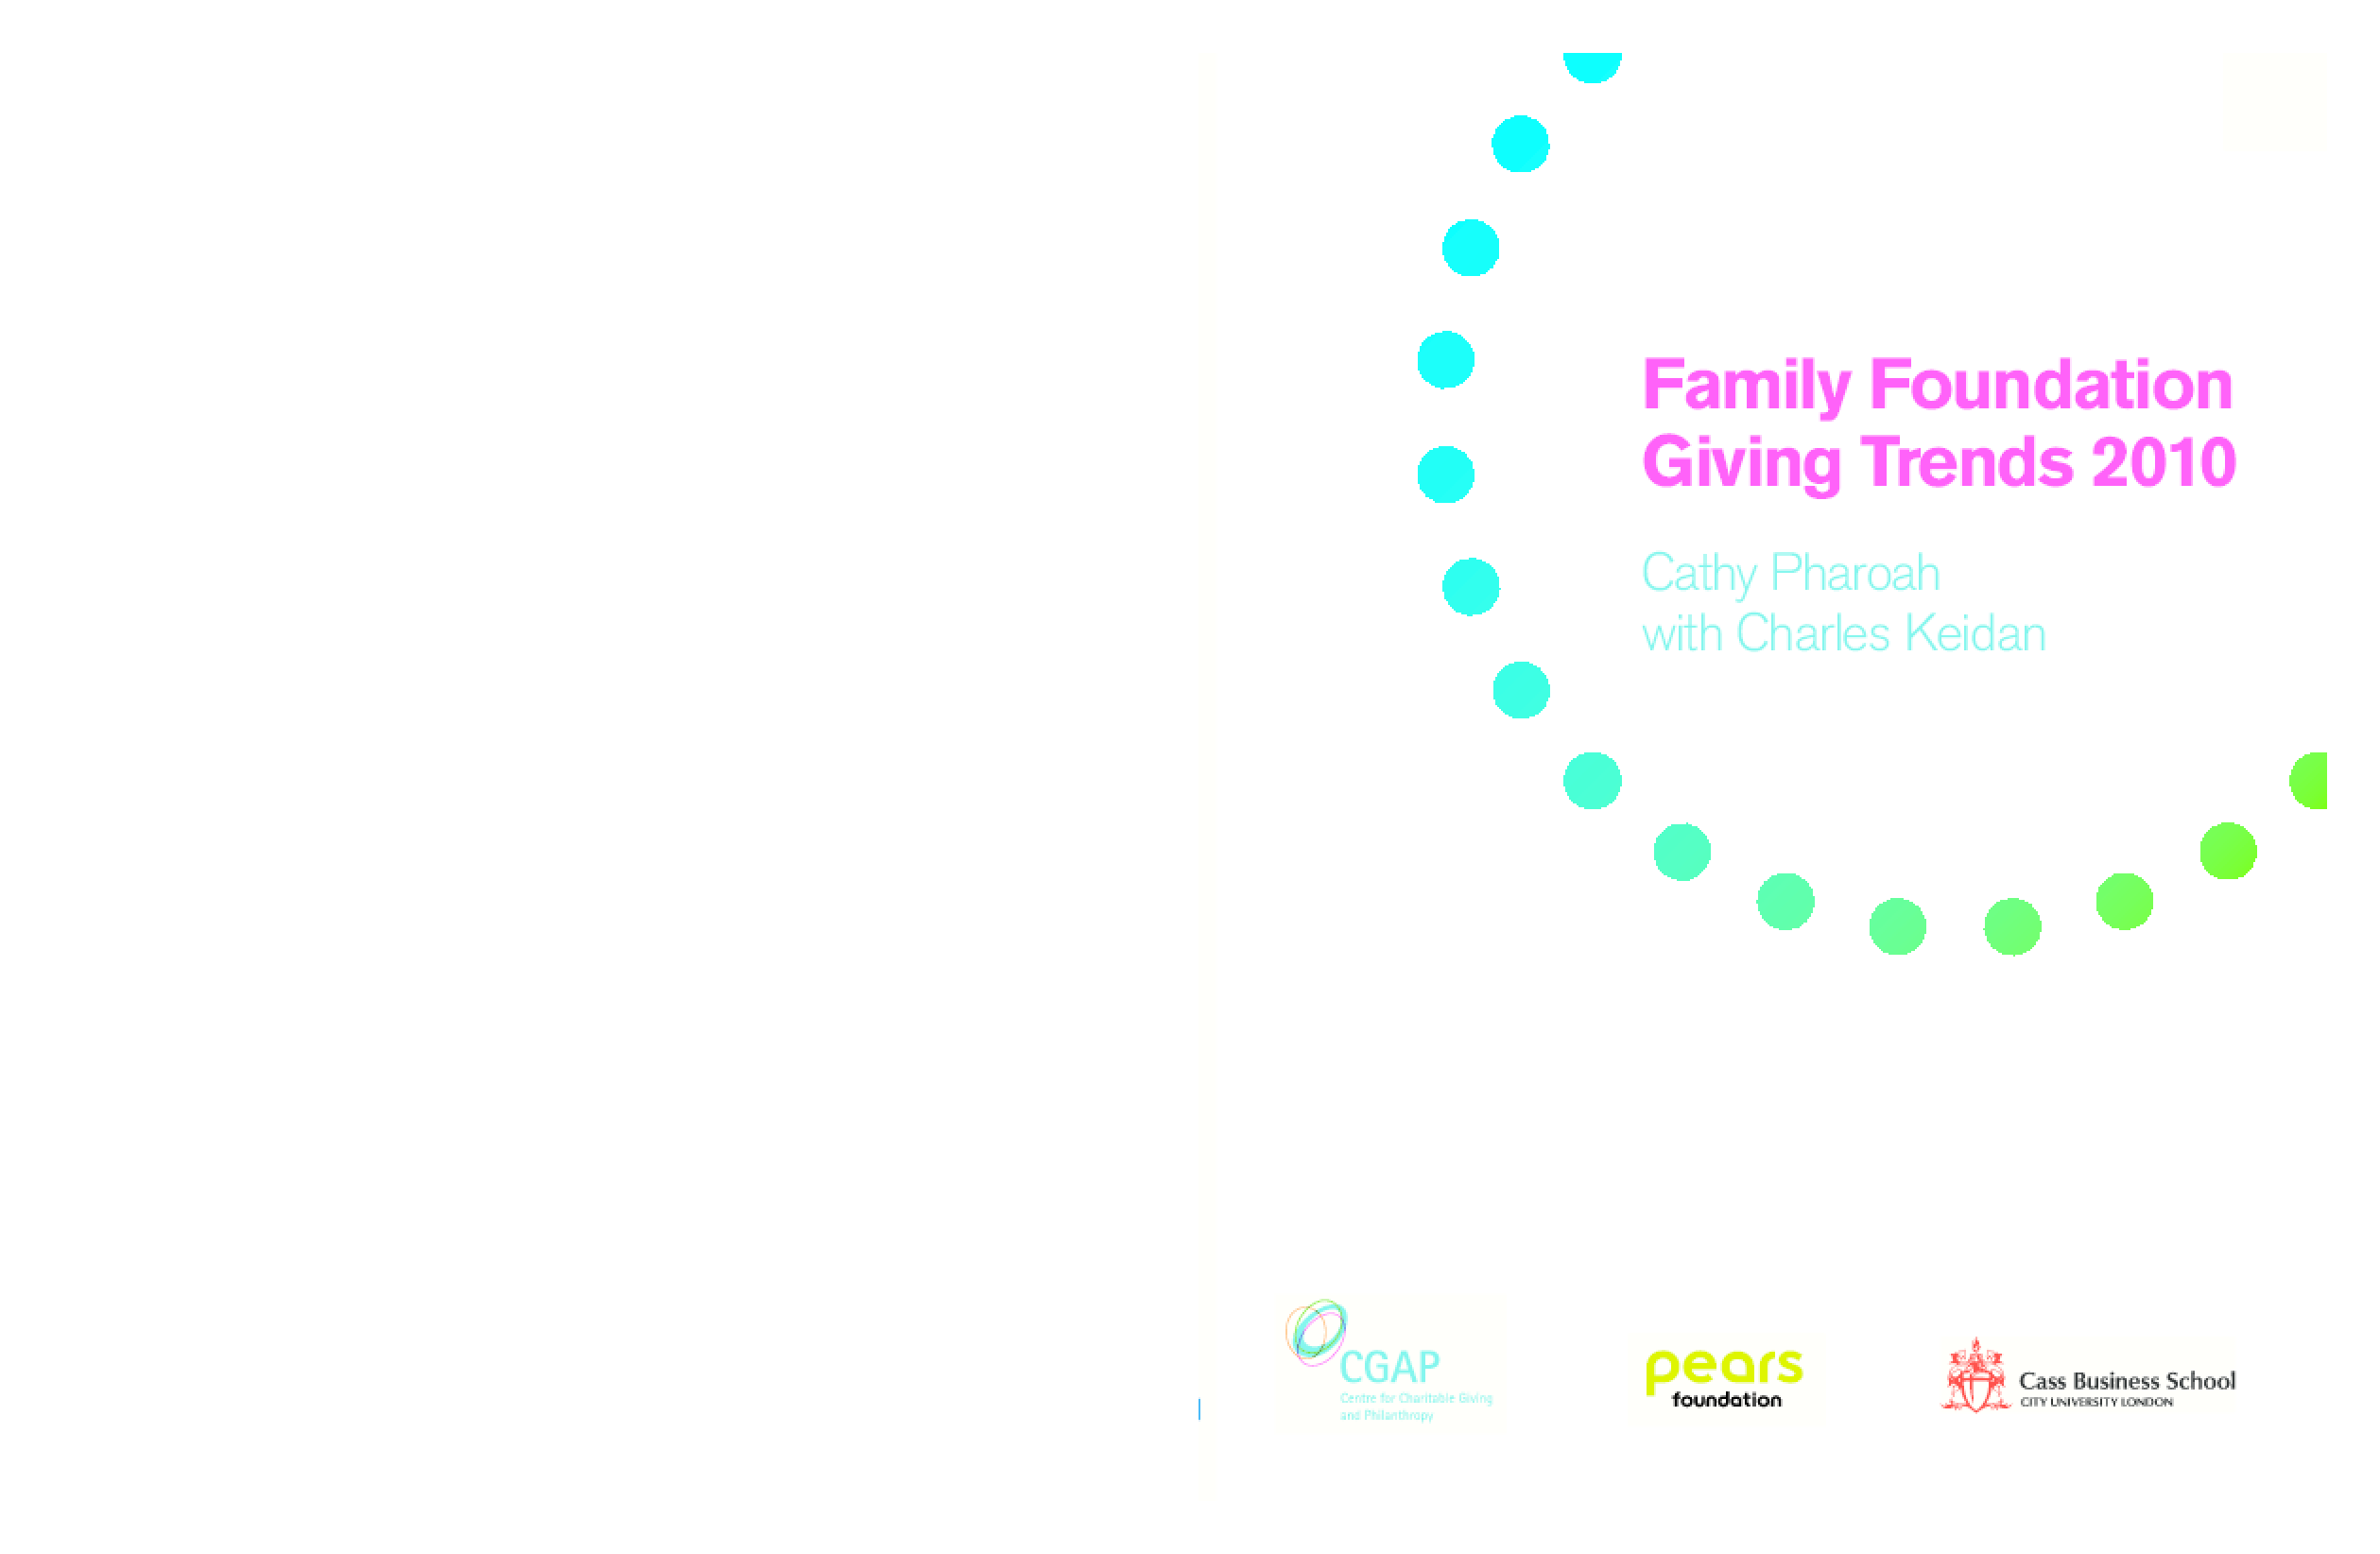 Family Foundation Giving Trends 2010